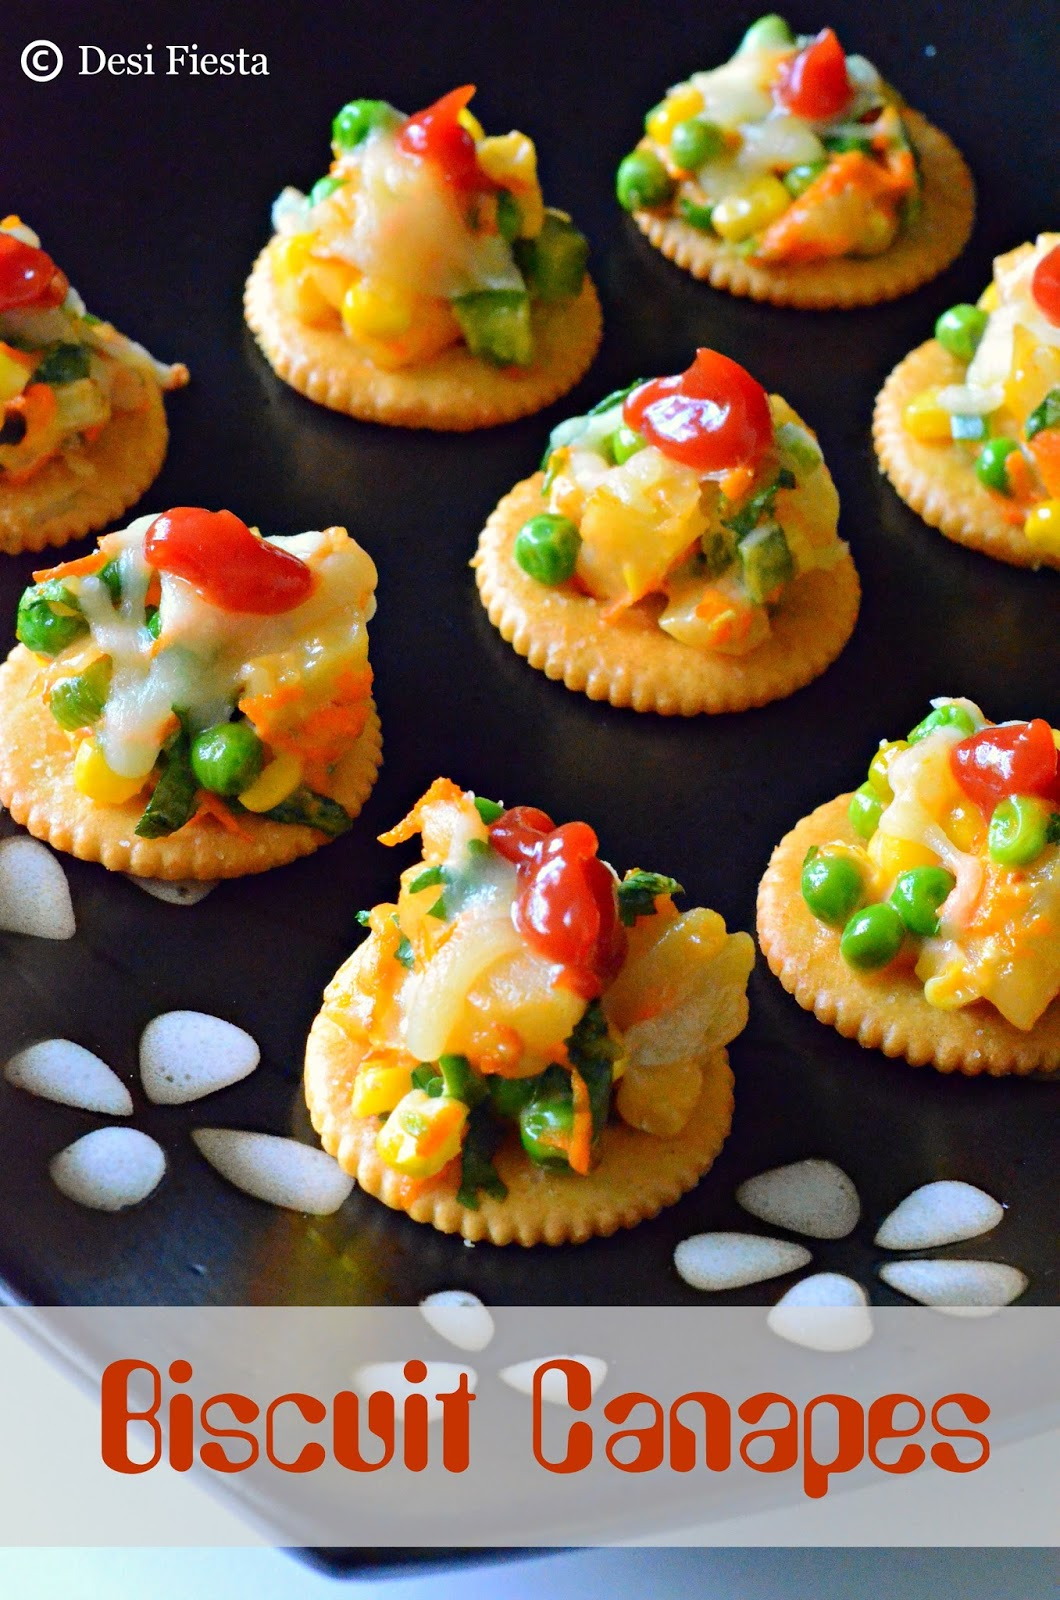 Biscuit canapes with vegetable topping monaco canapes for Decoration canape